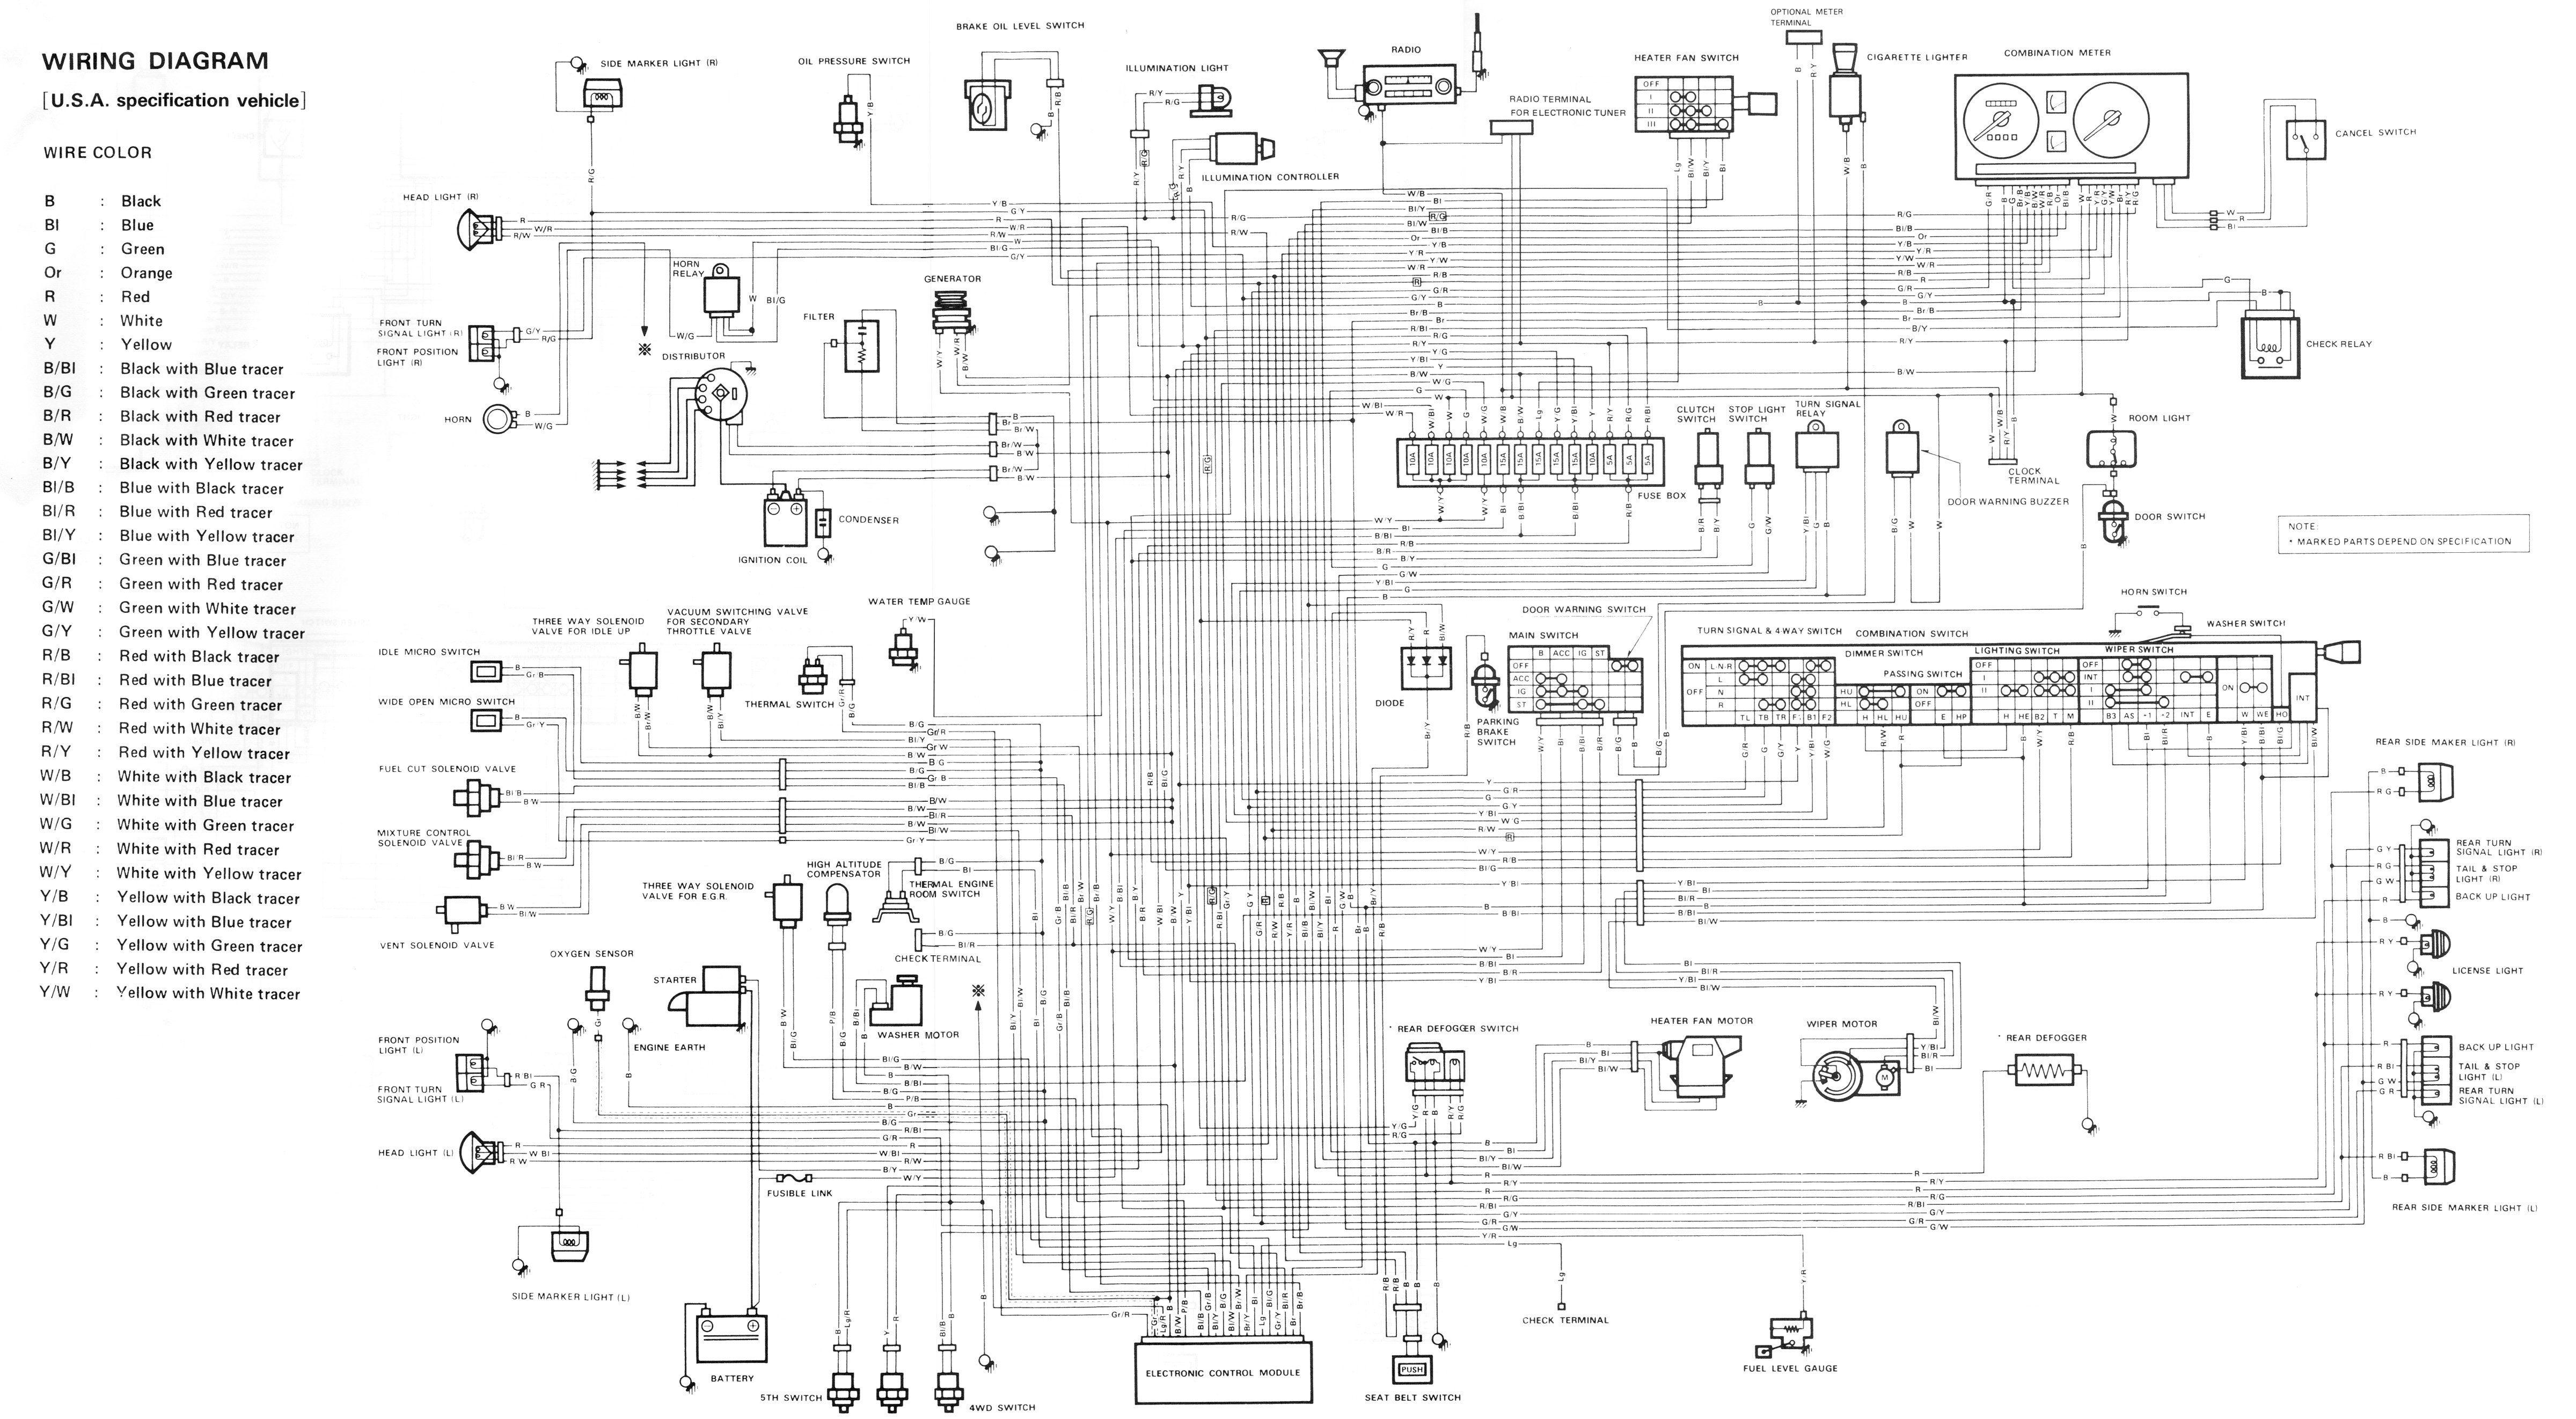 samurai complete wiring diagram (carbureted model)